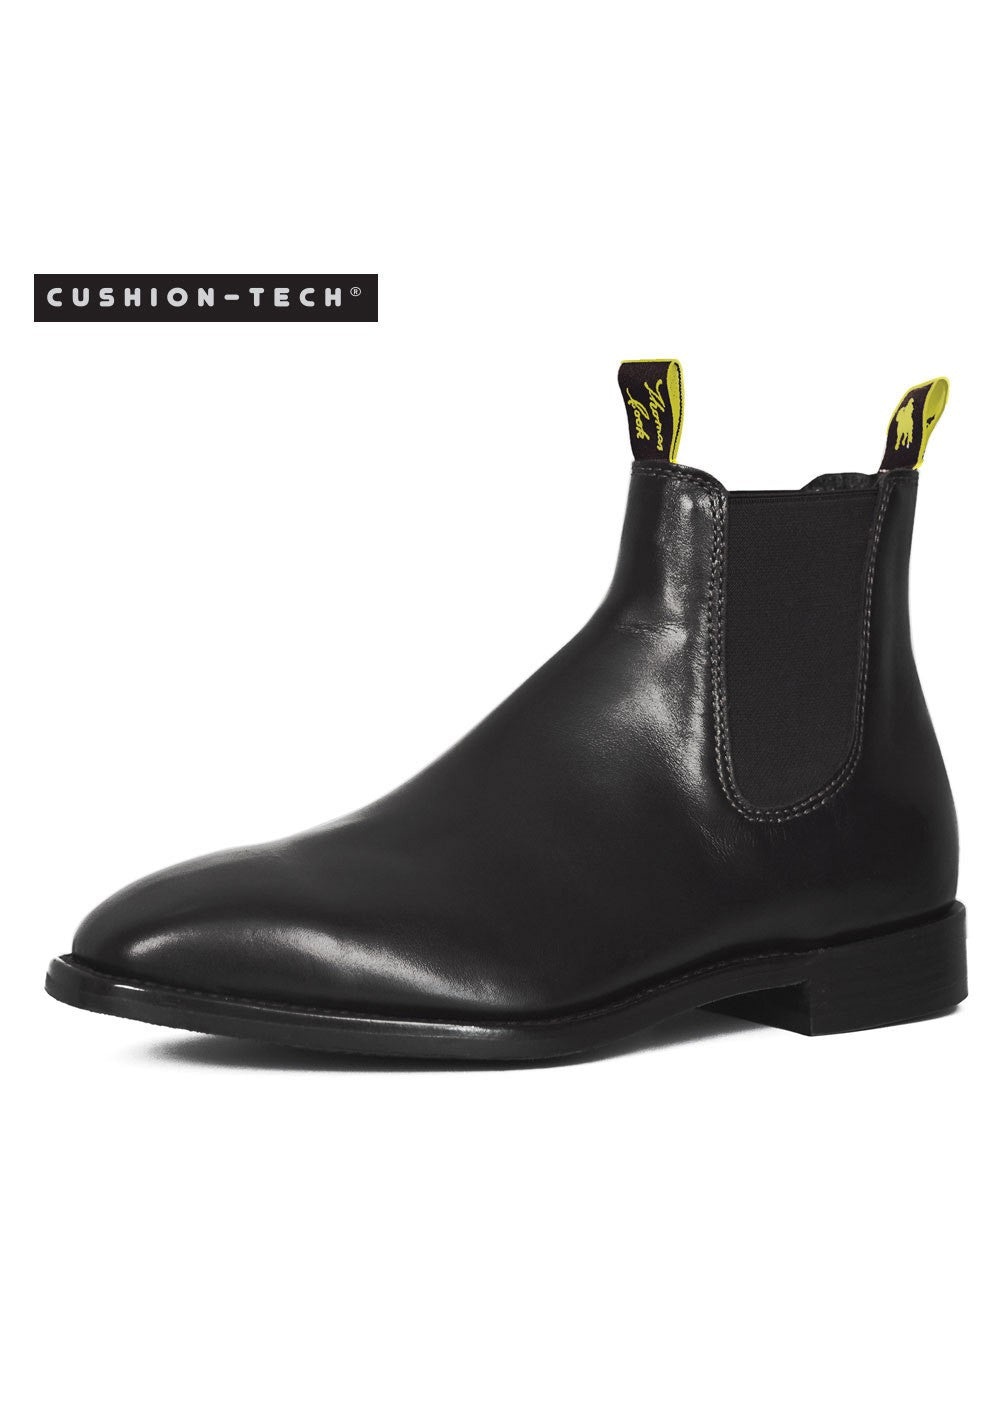 Thomas Cook | Mens | Boots | Trentham | Black